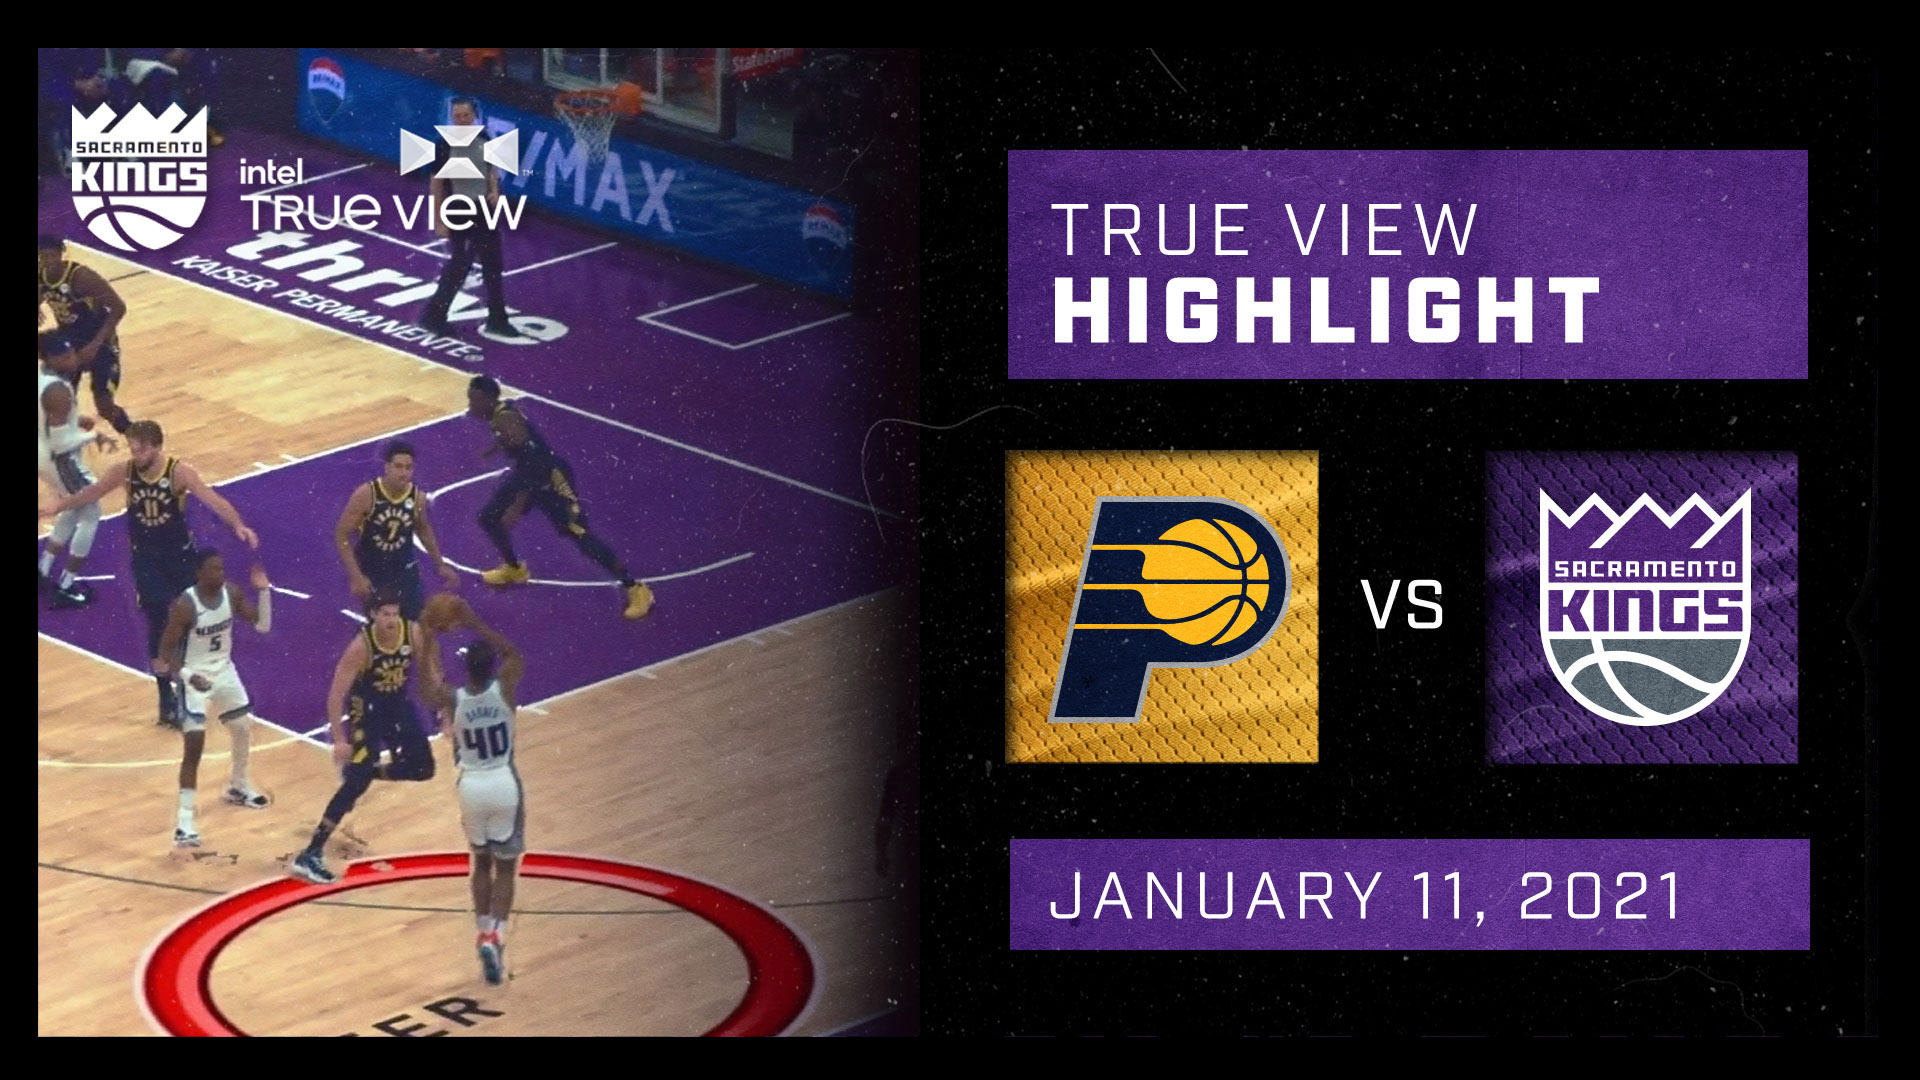 Intel True View Highlight - Barnes Dunk vs Pacers 1.11.21